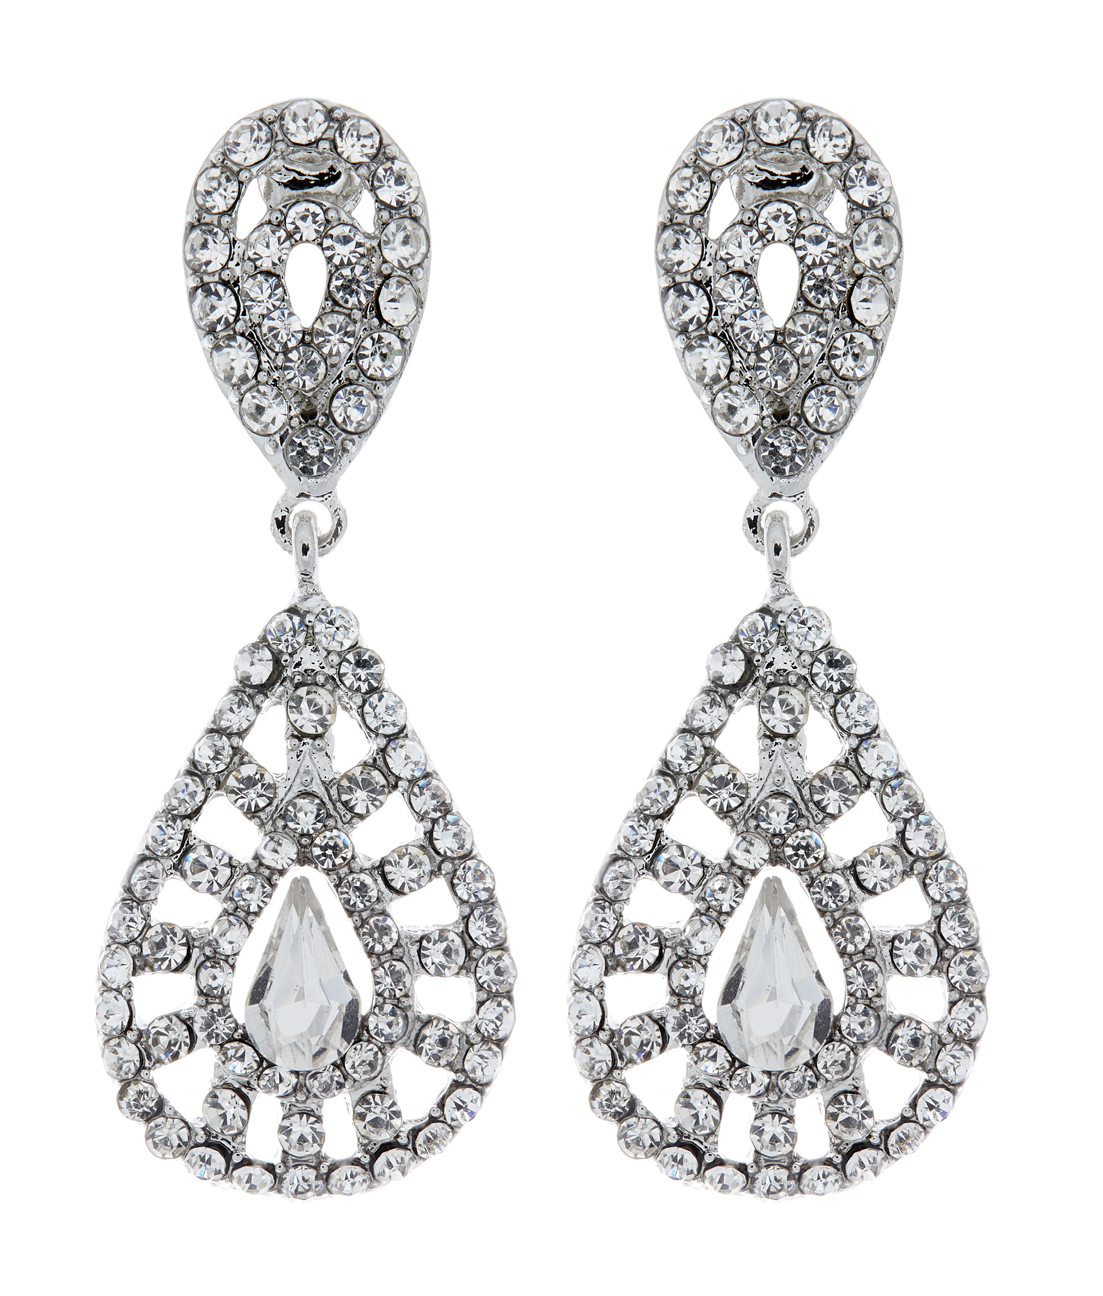 Clip On Earrings - Elsa - silver earring with a clear stone and crystals